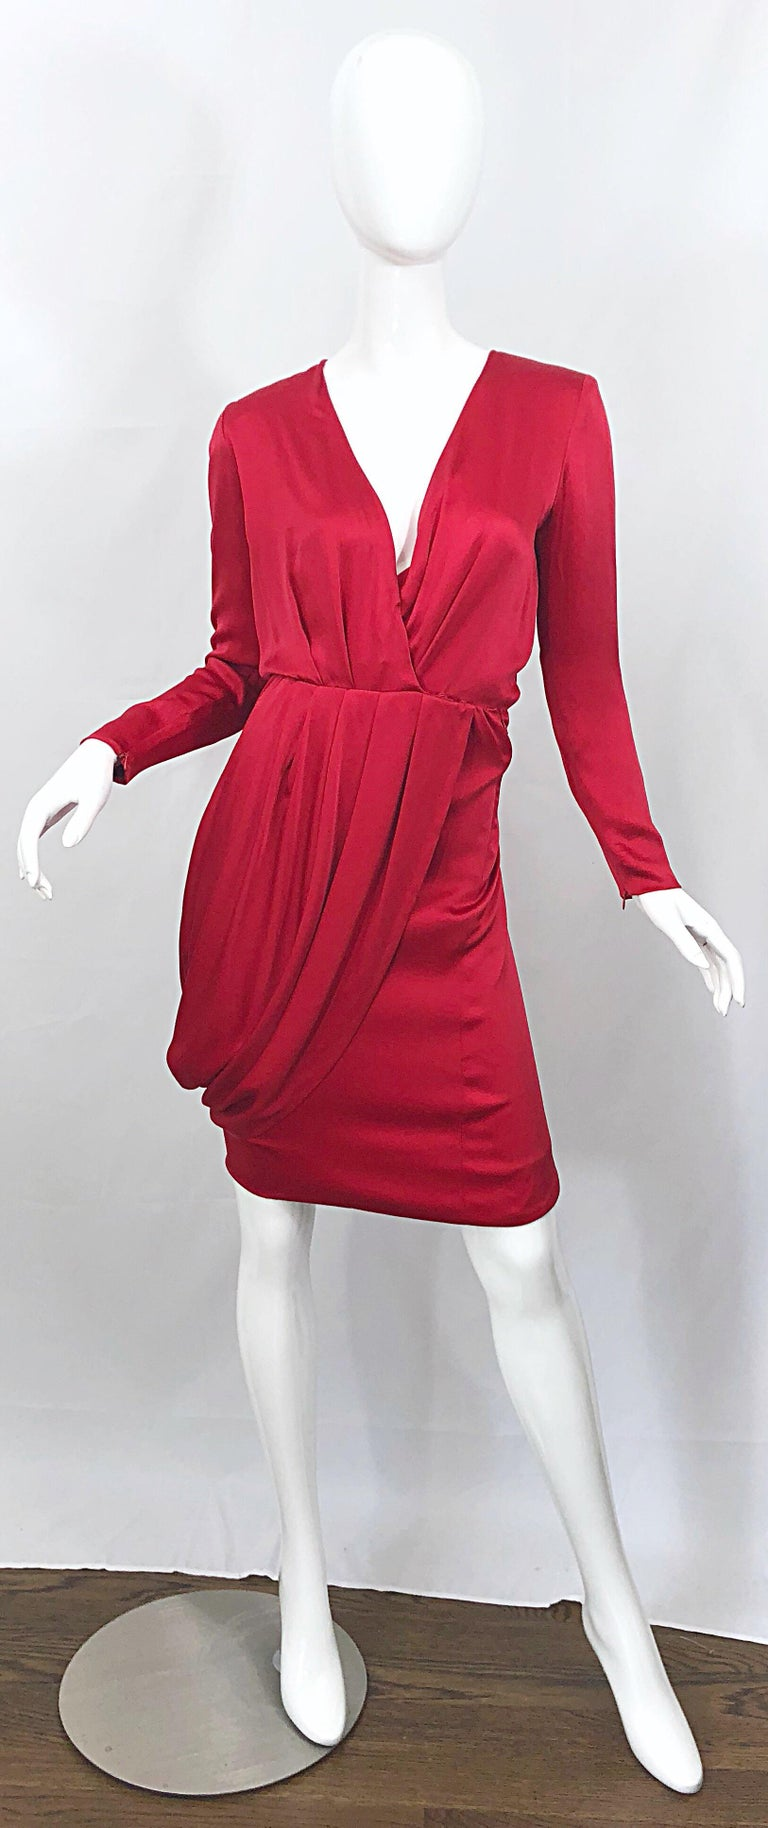 Vintage Givenchy Couture by Alexander McQueen Sz 36 Lipstick Red Silk Cape Dress For Sale 8